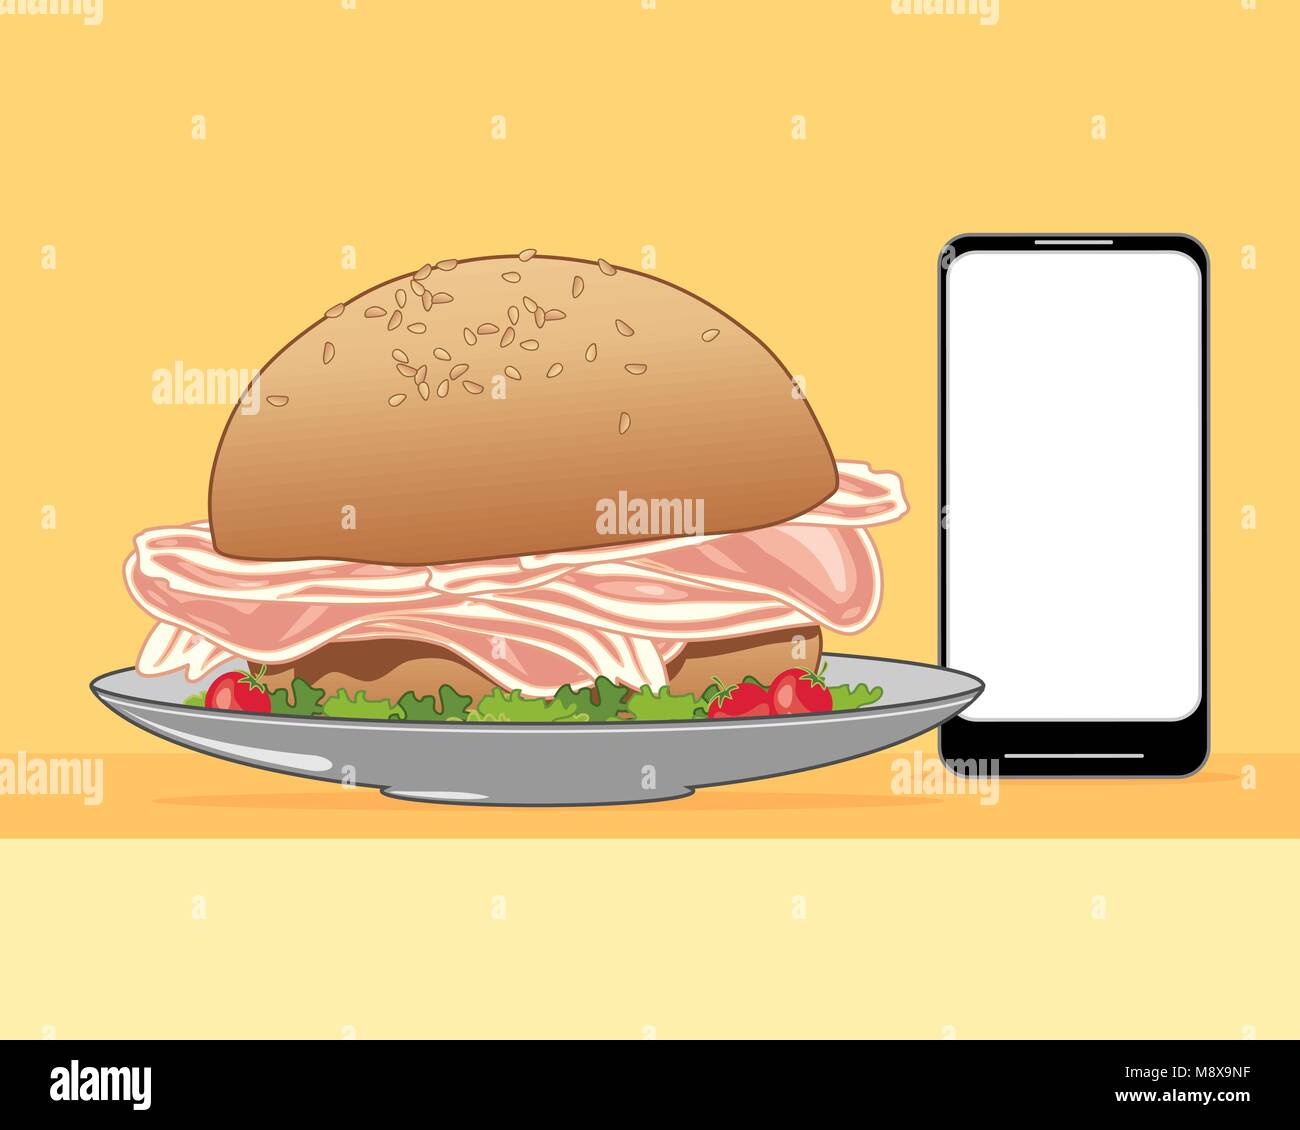 a vector illustration in eps 10 format of a delicious bacon and salad sandwich made from a sesame seed bun ordered - Stock Vector